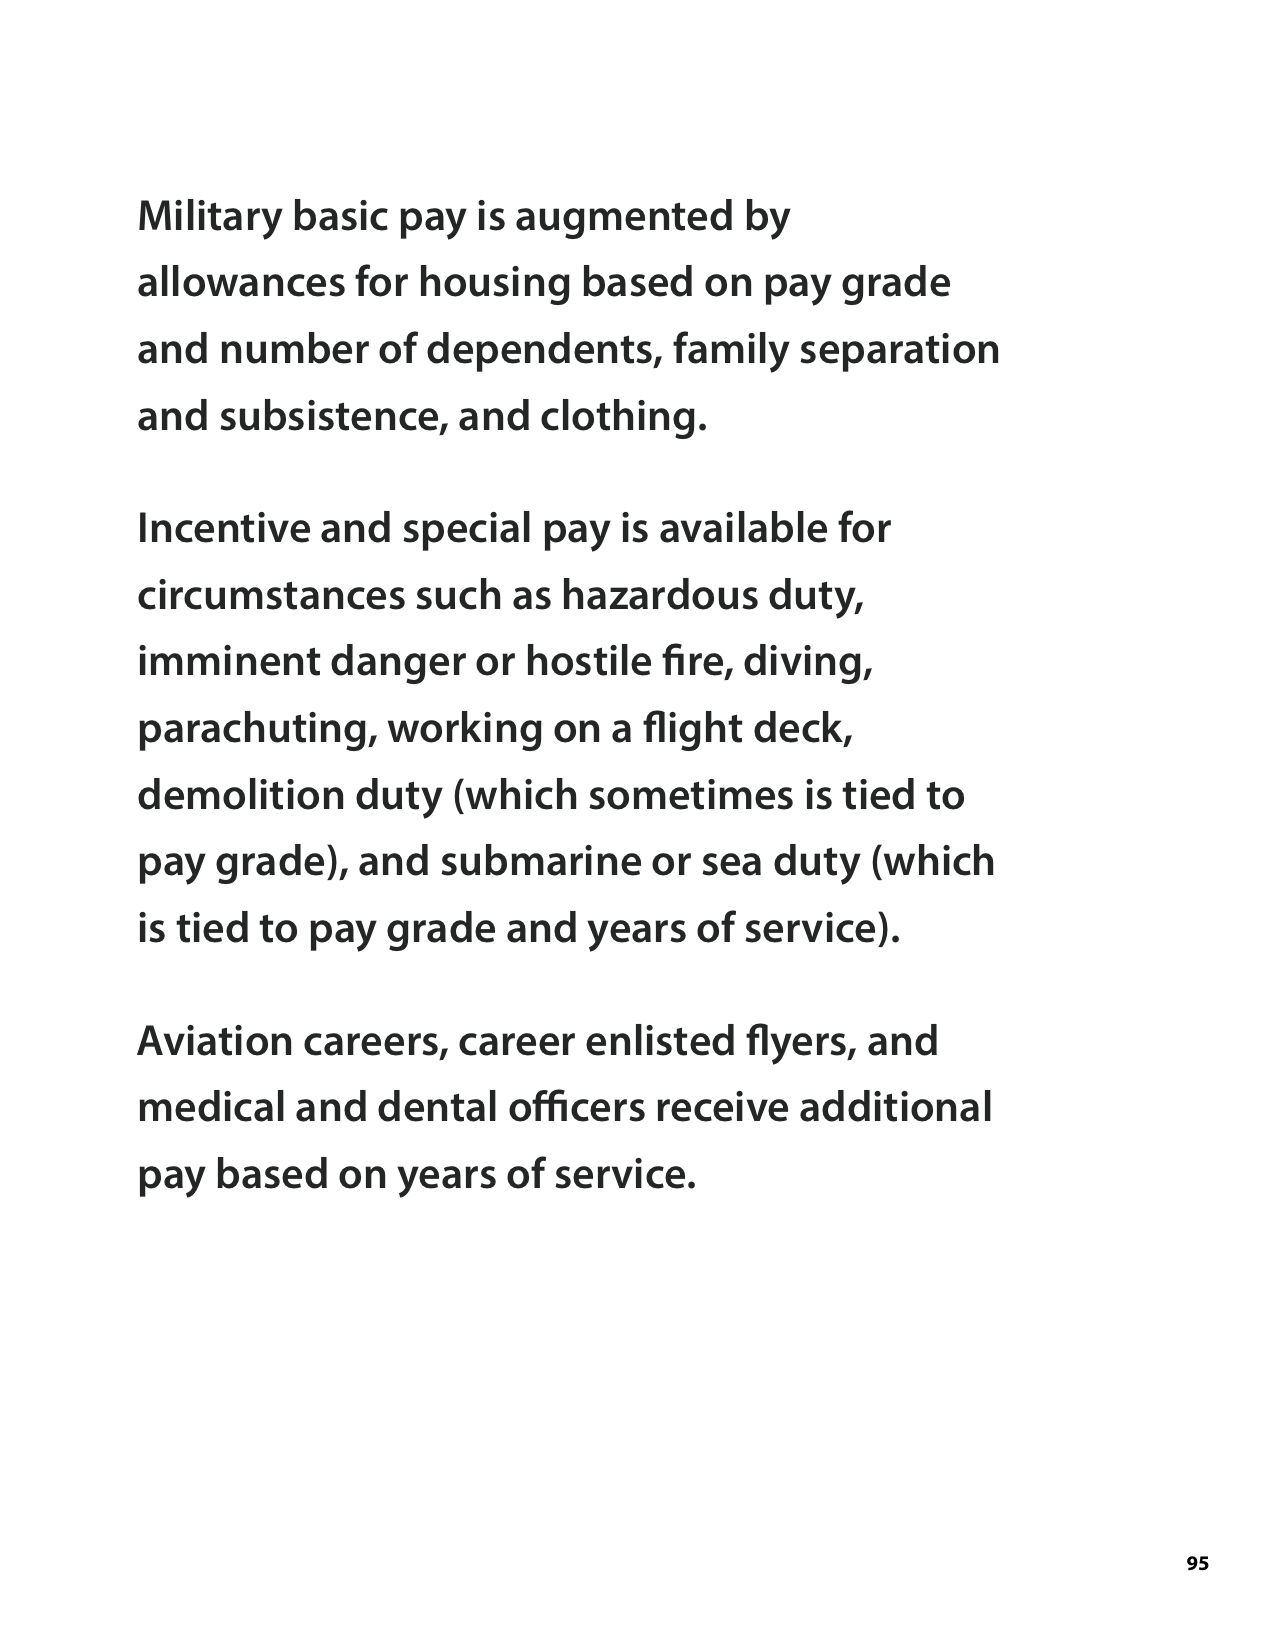 IncomeGuide_2013_Jan17_RGB_page 95_95.png